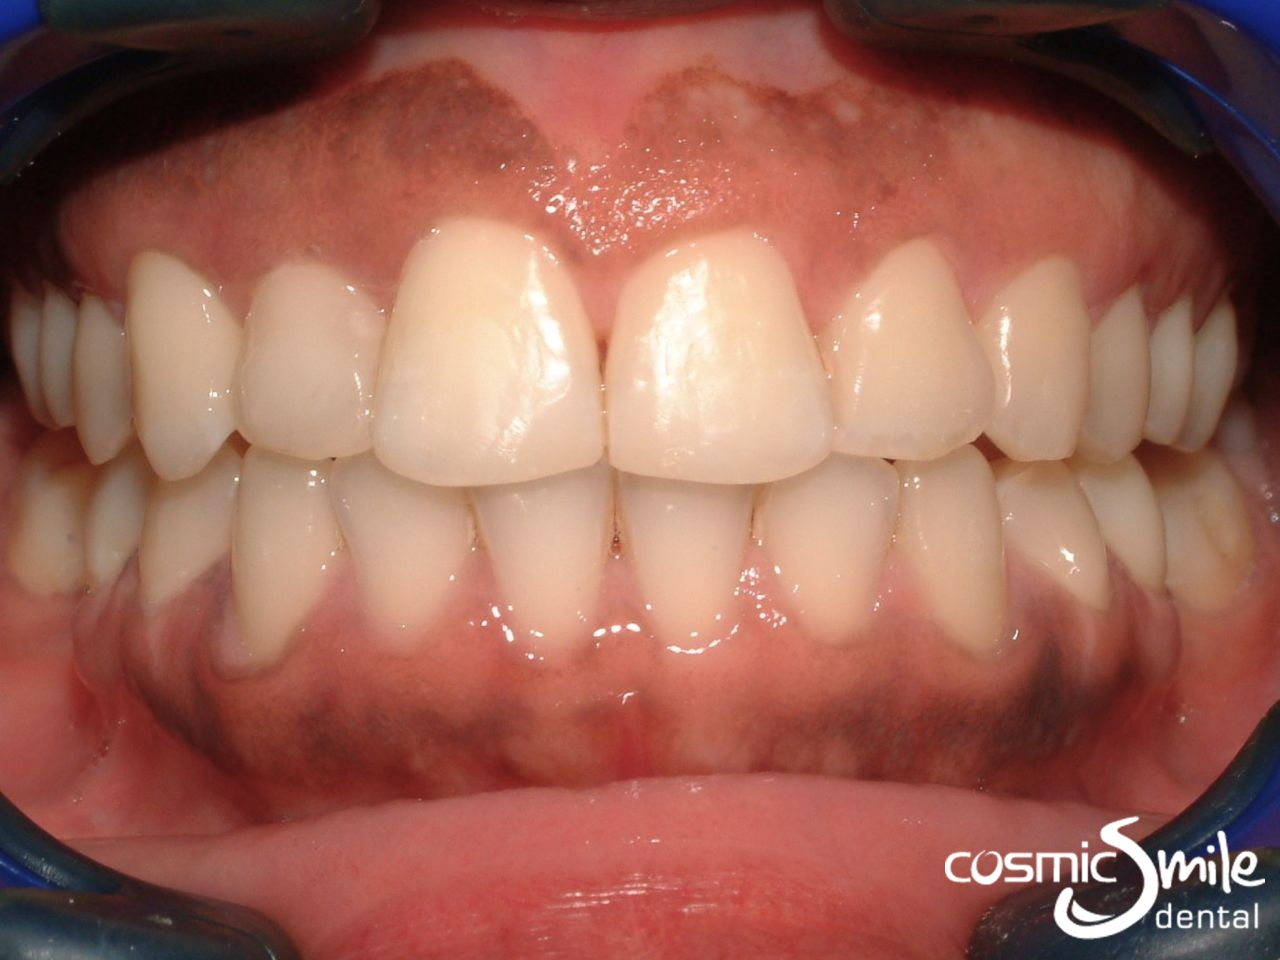 Sydney Invisalign - Before and After - Cosmic Smile Dental